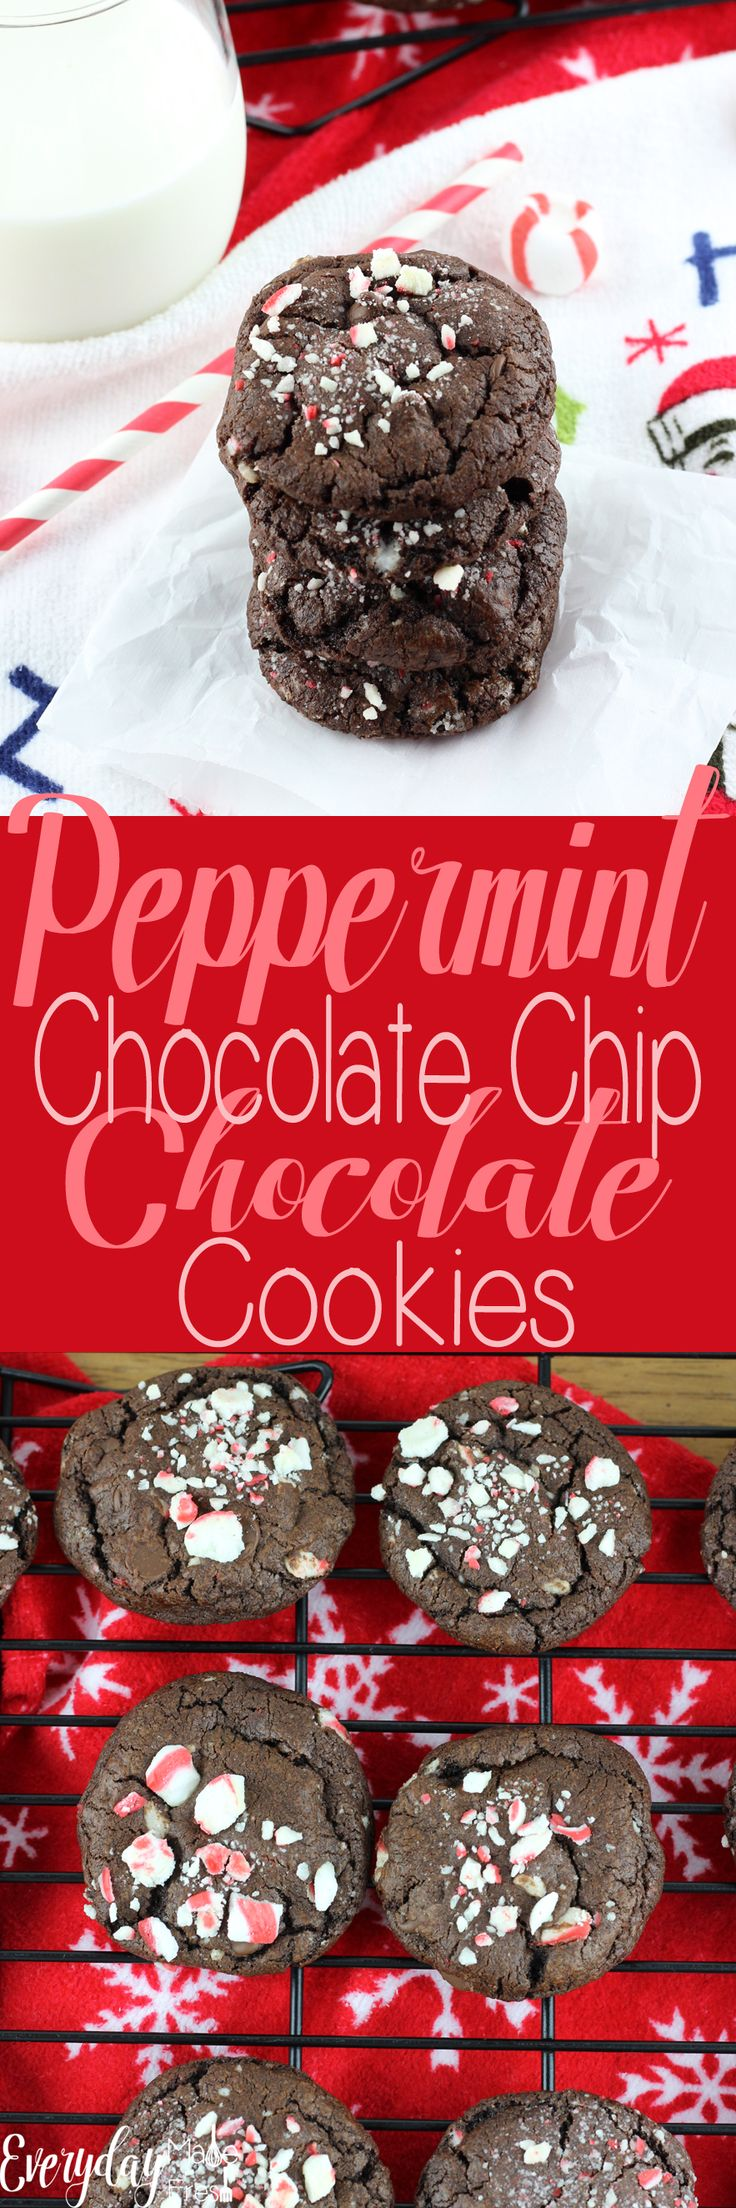 Double the chocolate in these Peppermint Chocolate Chip Chocolate Cookies. Made with soft peppermints, and chocolate on chocolate, these are for the serious mint chocolate lovers! | EverydayMadeFresh.com http://www.everydaymadefresh.com/peppermint-chocolate-chip-chocolate-cookies/